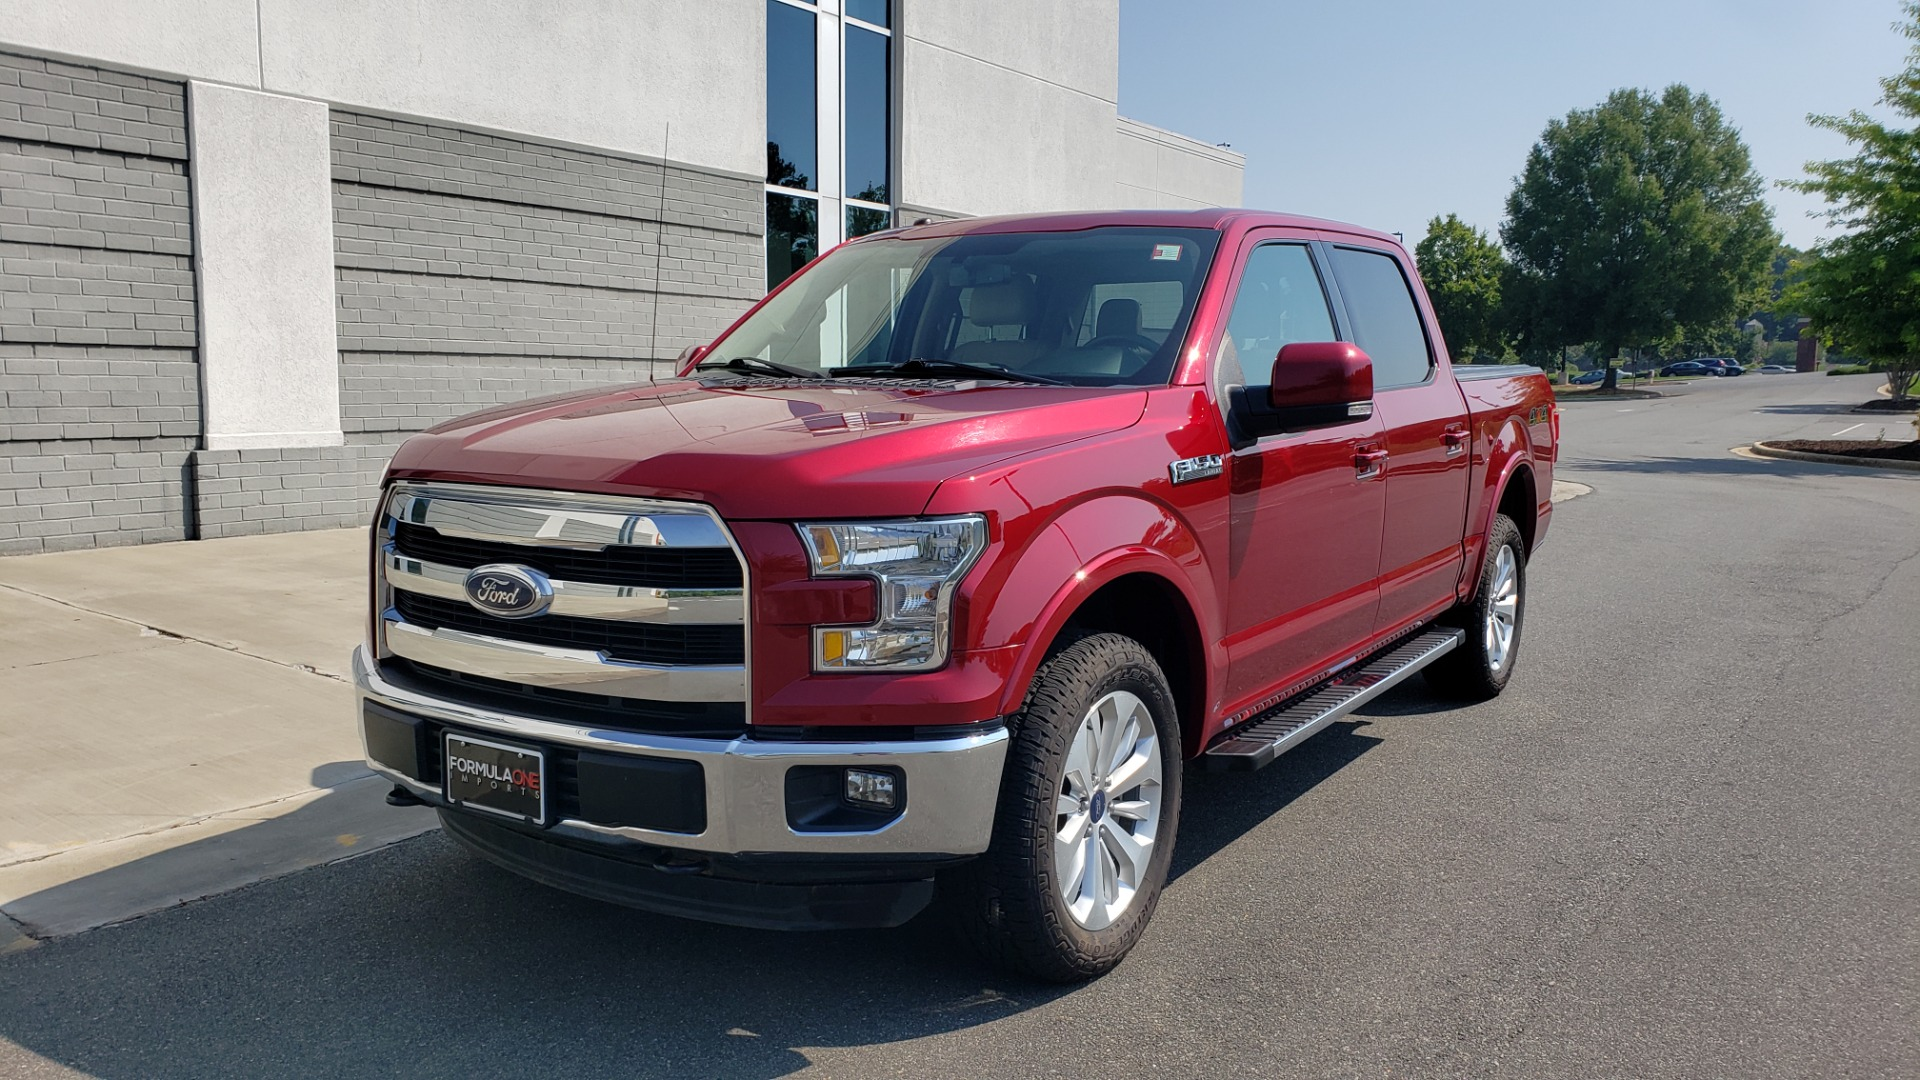 Used 2015 Ford F-150 LARIAT 4X4 SUPERCREW / 5.0L V8 / AUTO / NAV / SUNROOF / REARVIEW for sale $33,995 at Formula Imports in Charlotte NC 28227 3